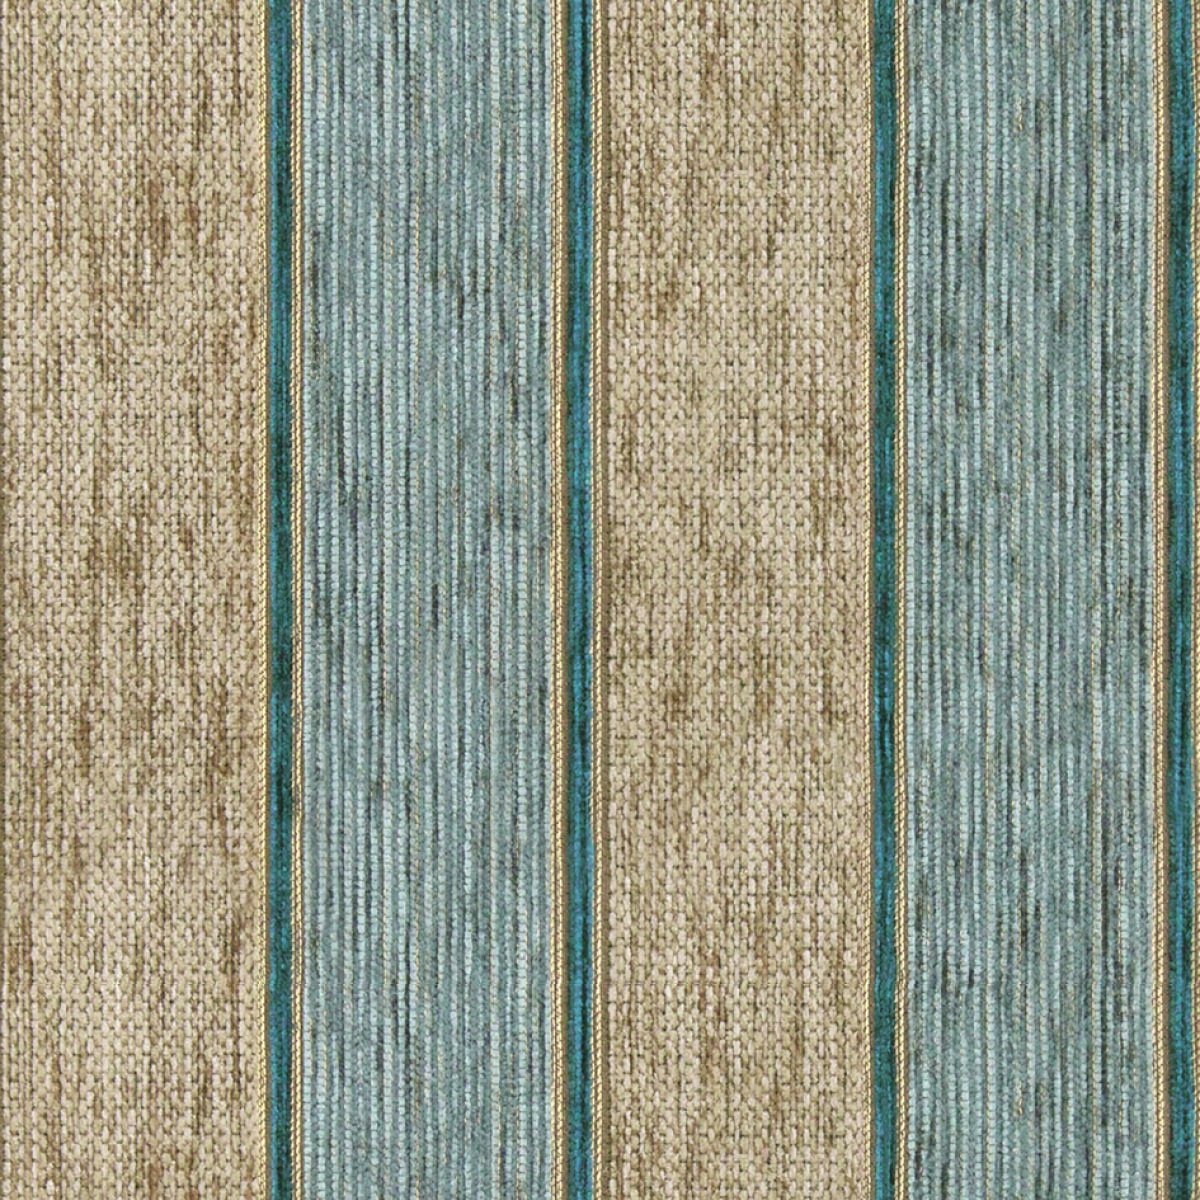 Althorp Stripe – Teal Mink